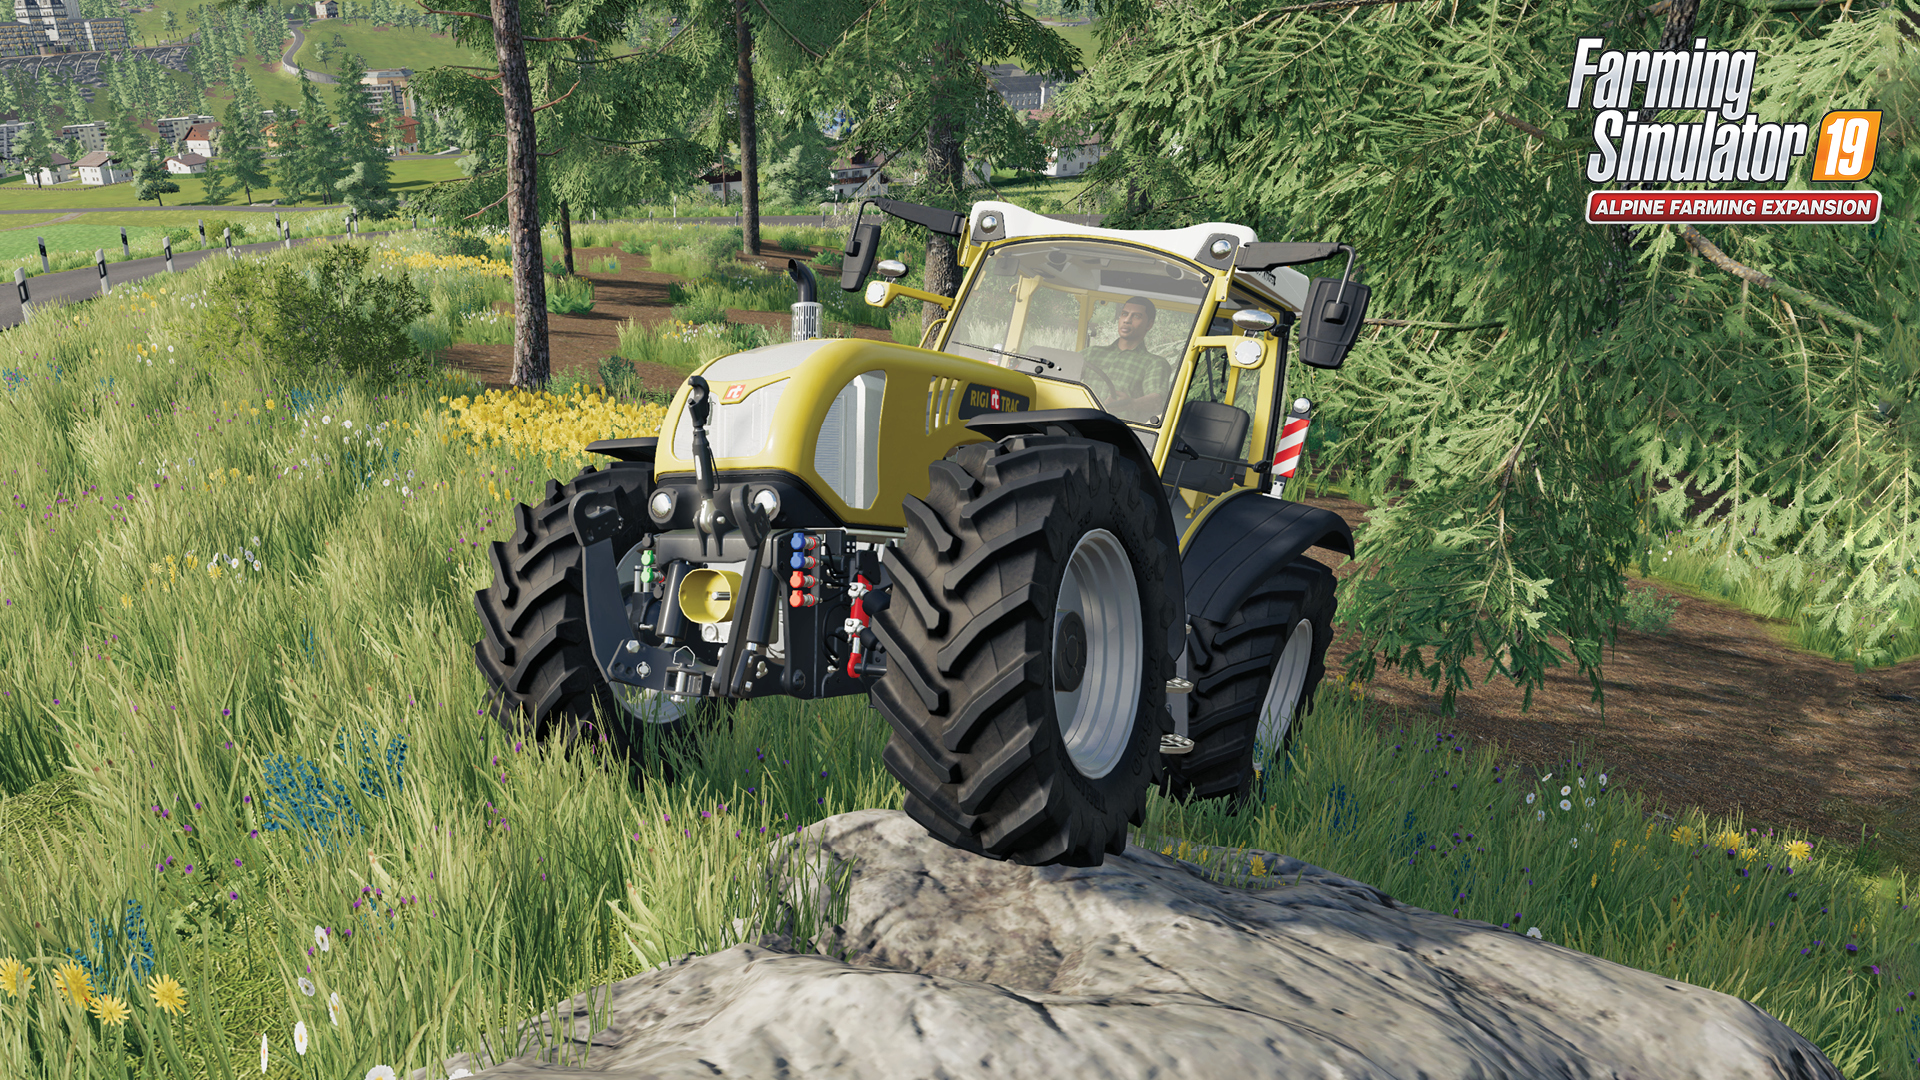 Get a glimpse of the new Alpine Farming Expansion map and vehicles!